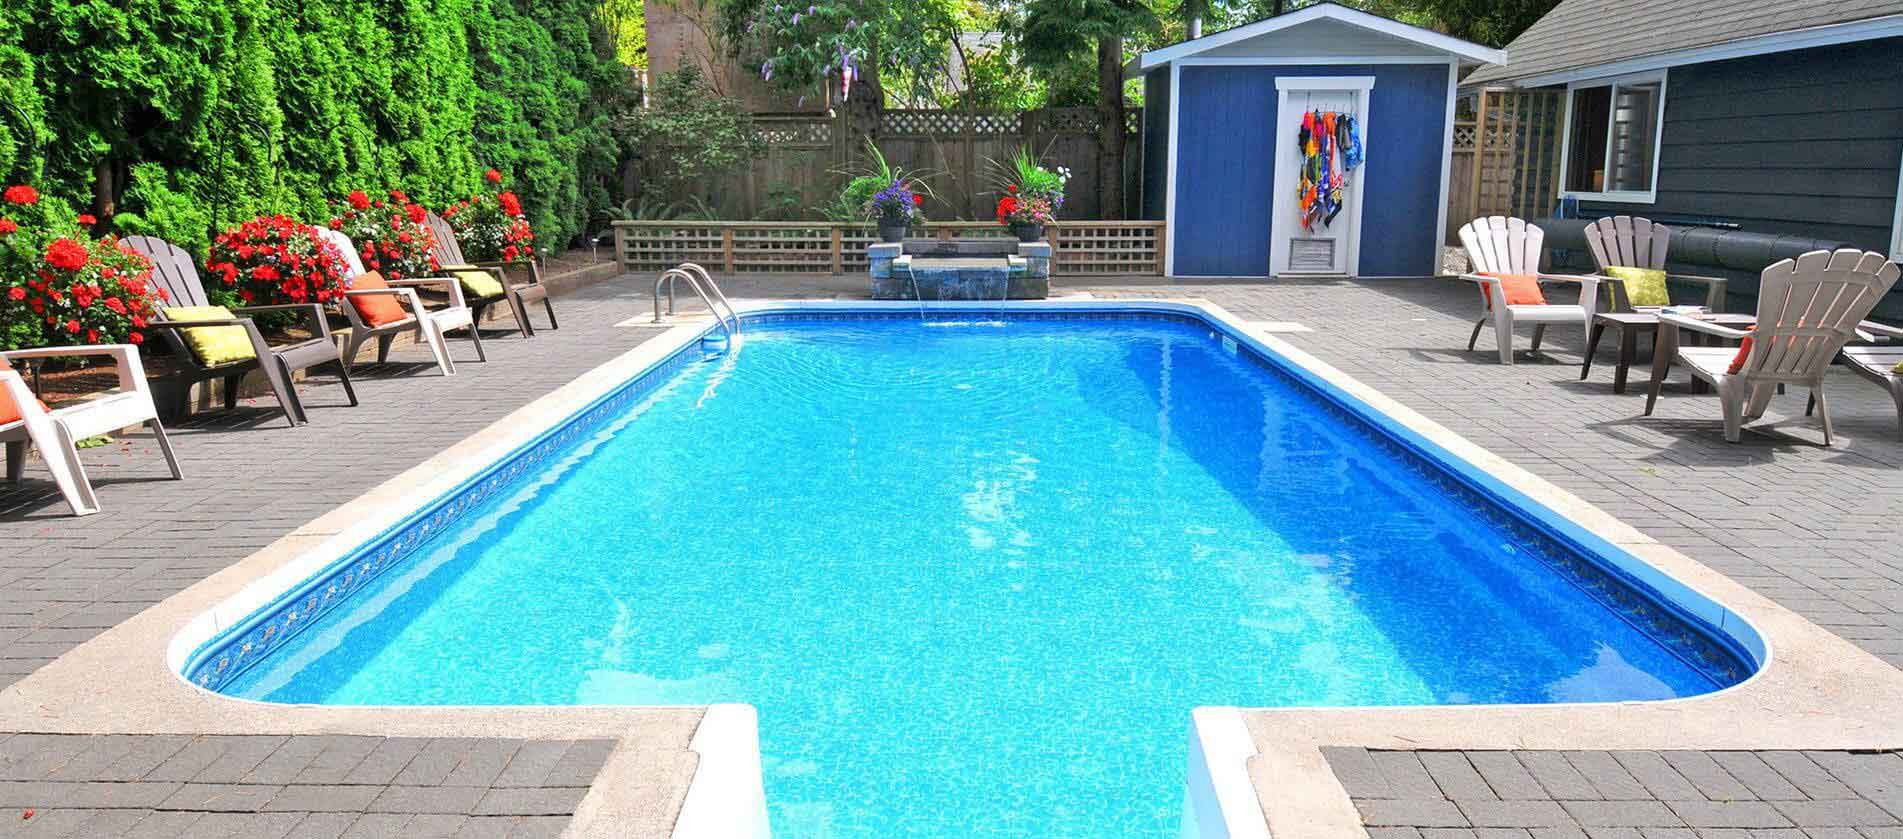 Monarch pools spas totowa nj swimming pool contractor for Swimming pool images